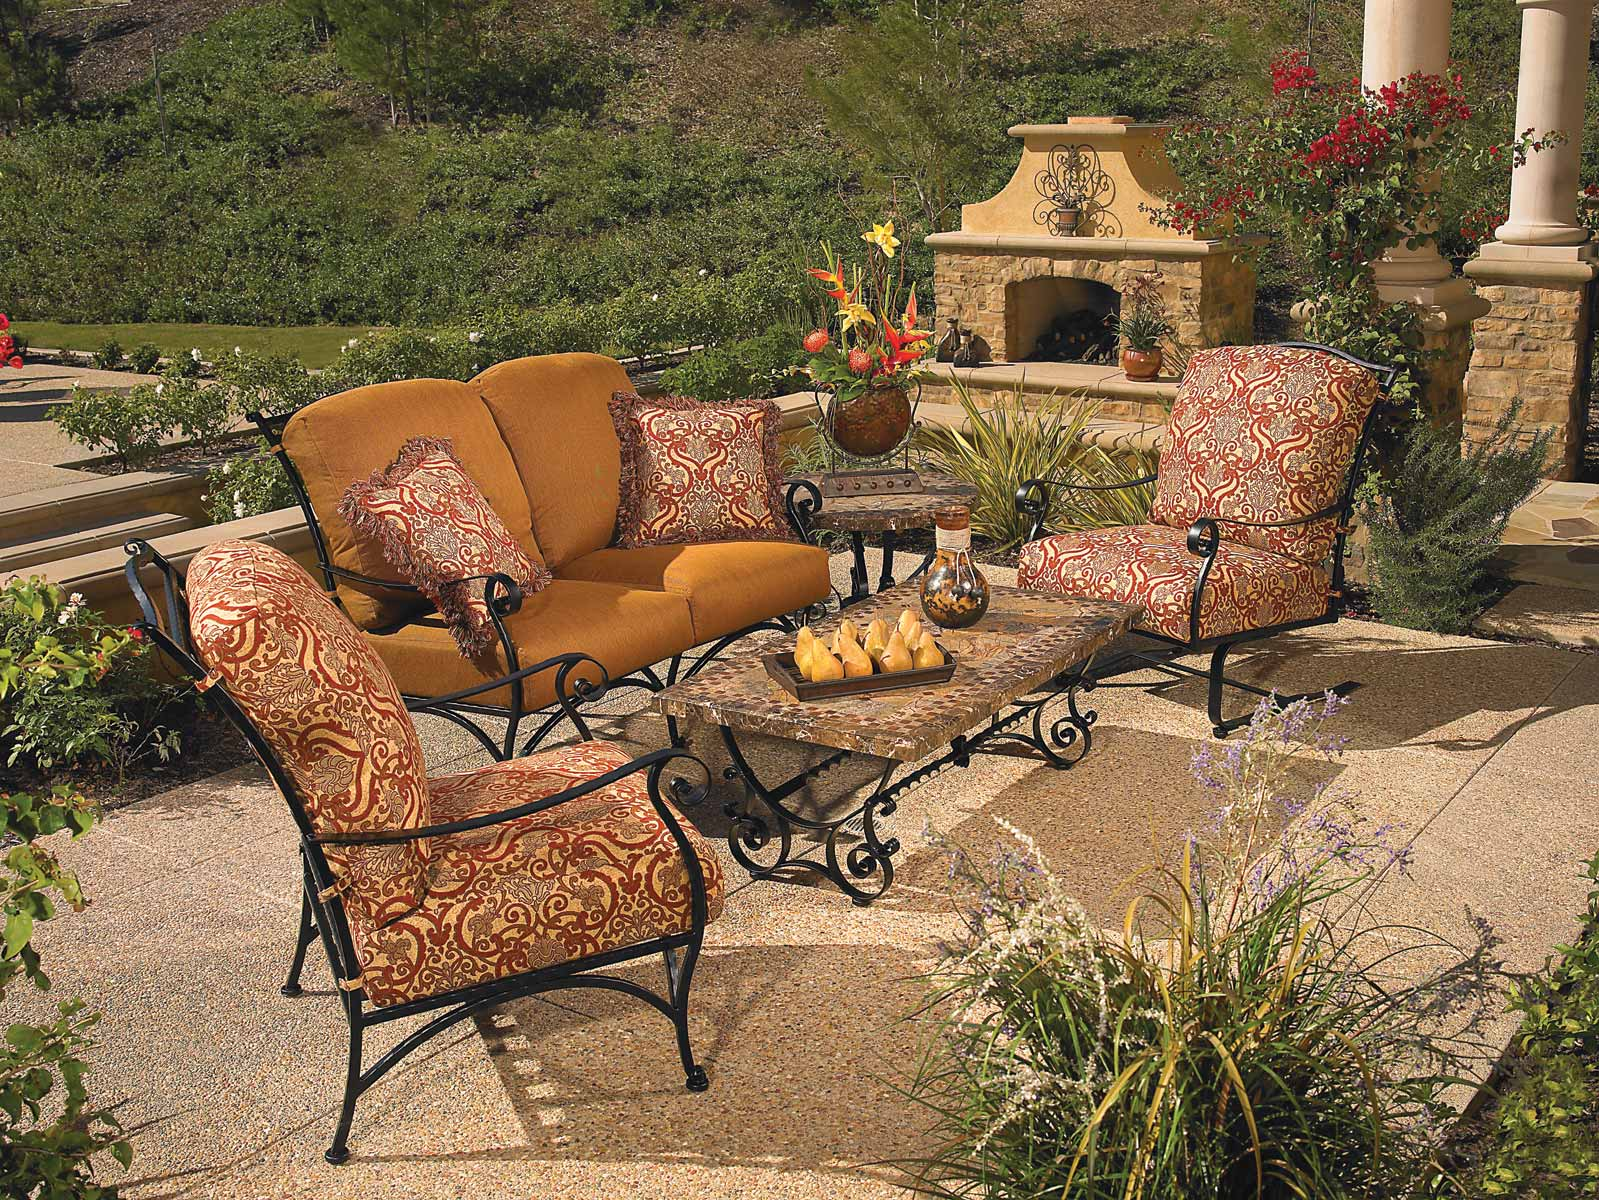 Luxury Outdoor Furniture Set Fireplace Part 53